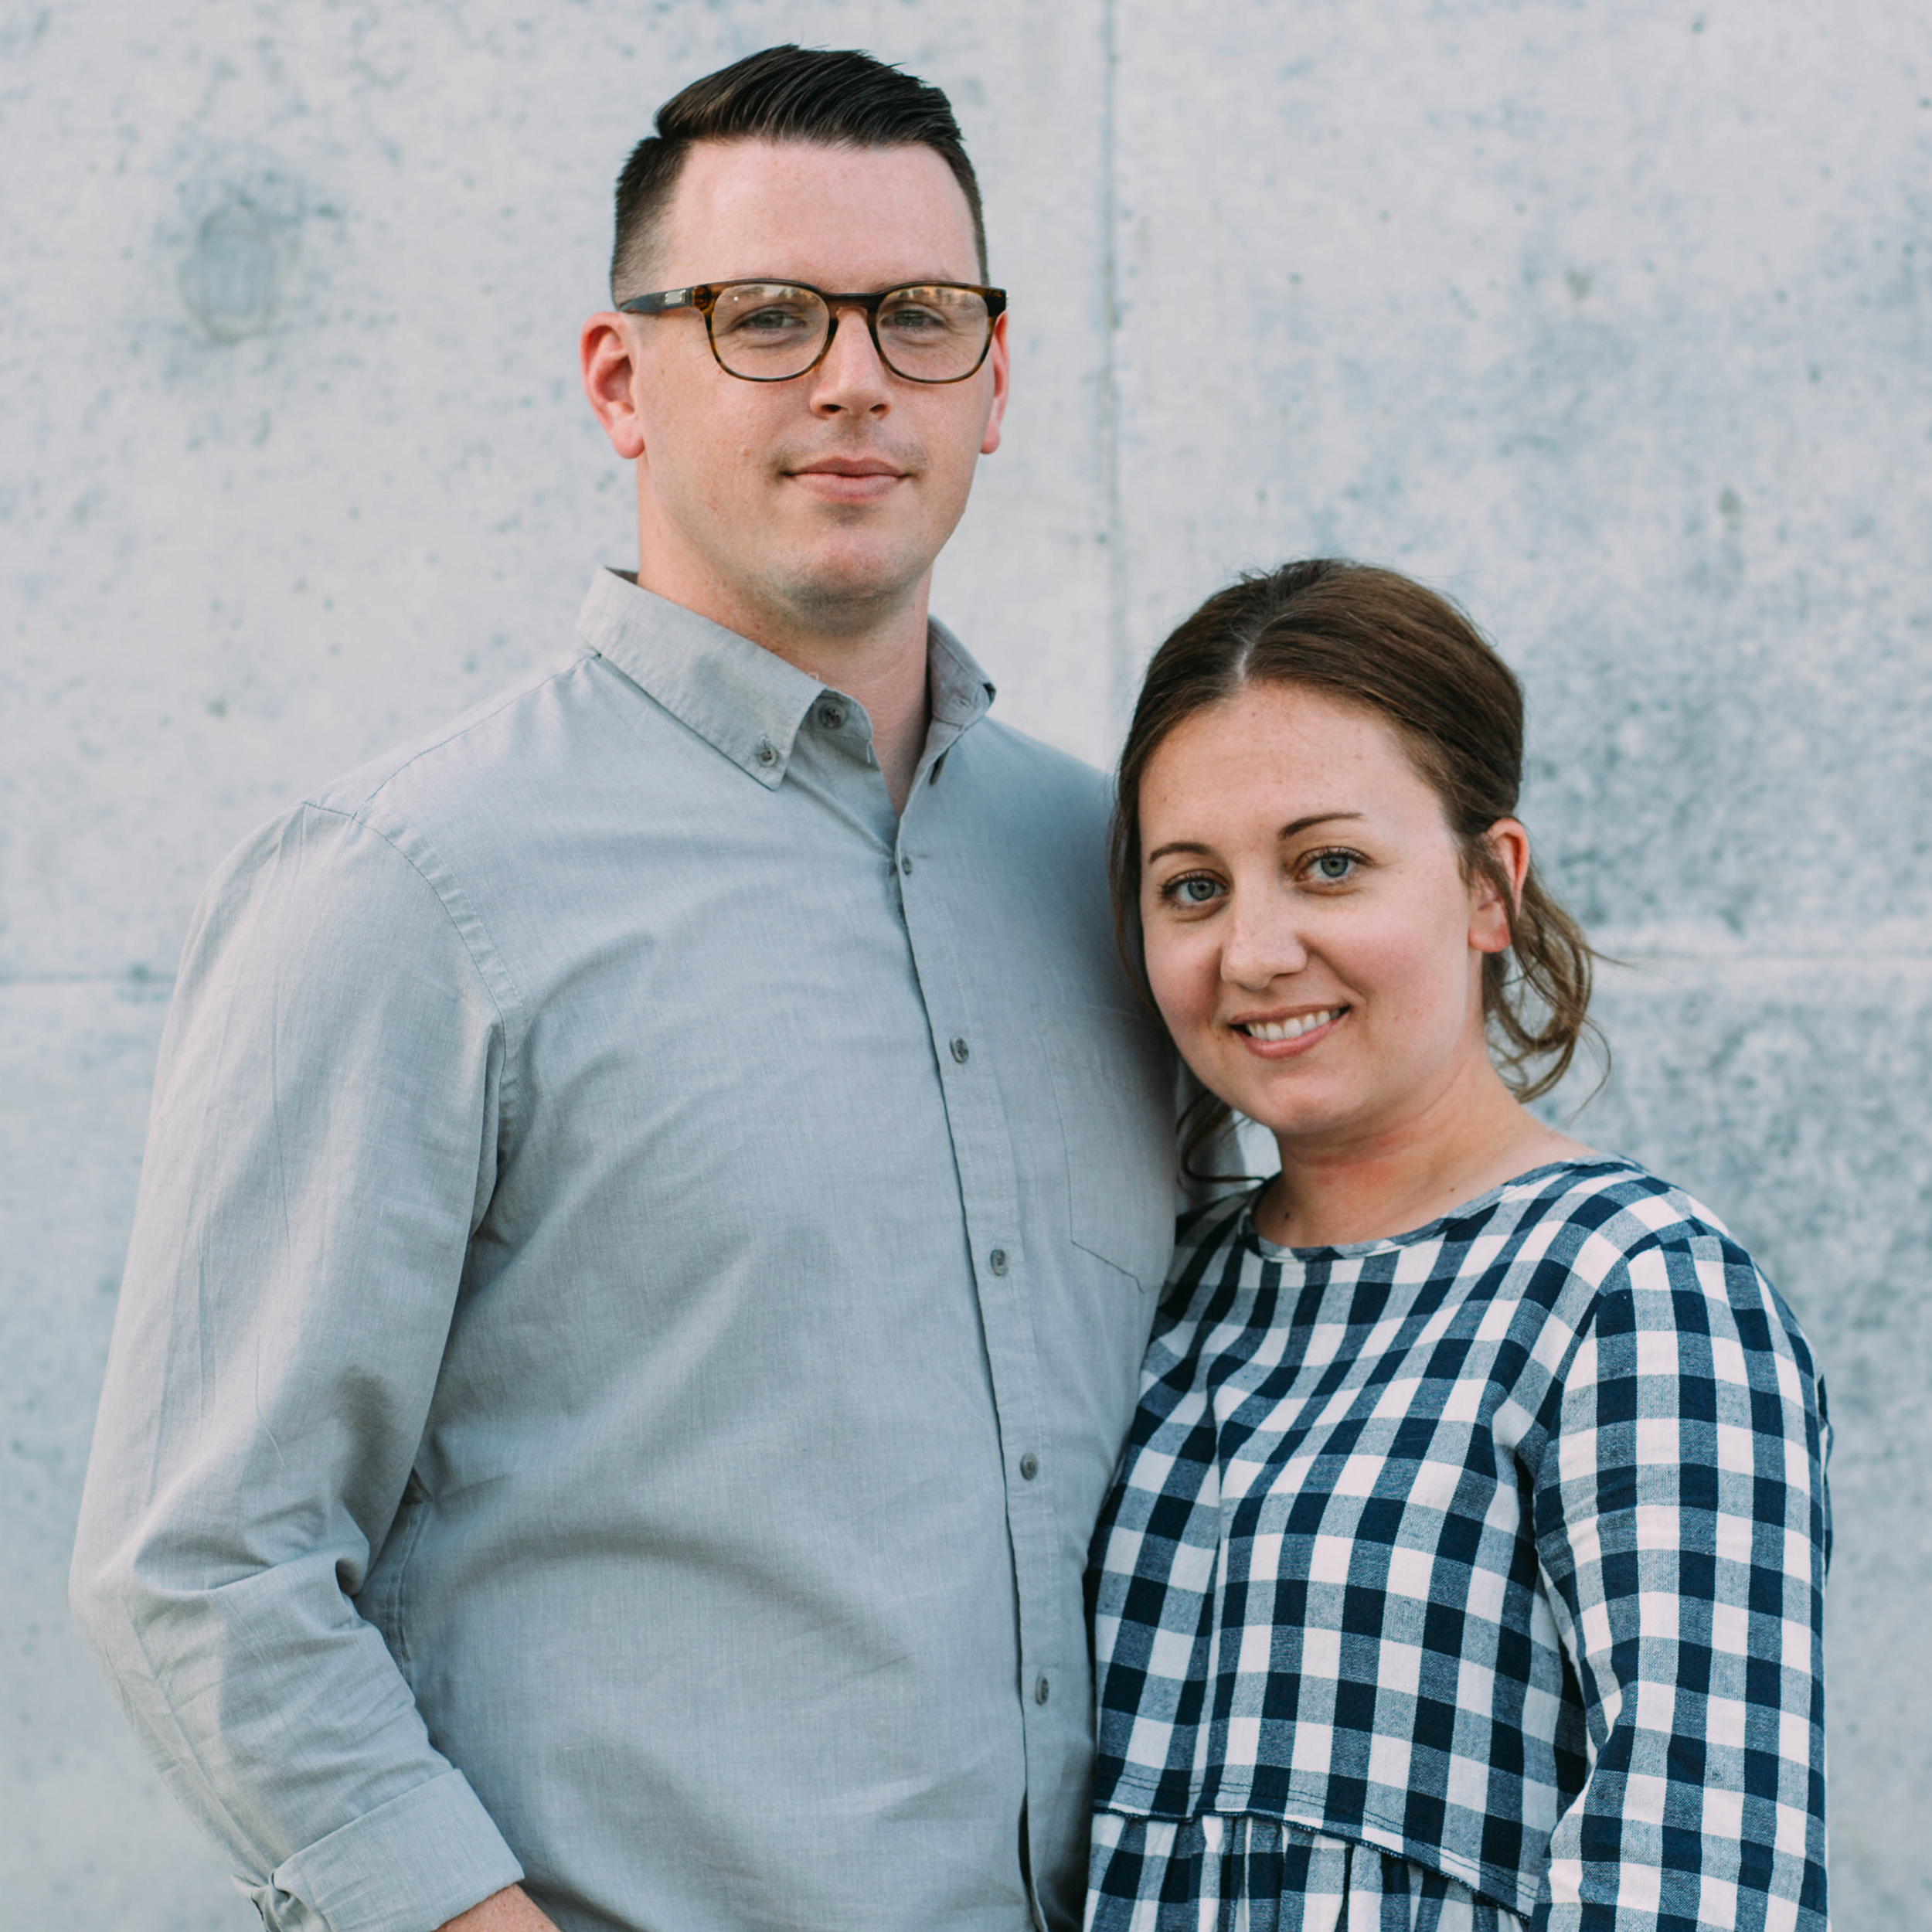 Student Pastor    Omar + Courtney Stiefer   In November of 2017, Omar and Courtney accepted the role of Student Pastors at Calvary Tabernacle. They both got their start in student ministry after attending Gateway College of Evangelism in St. Louis, MO. Having been in various roles within student ministry for over 7 years, they are excited to invest in the lives of students here in NWA. Family is #1 to them, as they have two handsome little guys, Liam and Holton. Omar loves being a father and in his spare time enjoys coffee, and sports. Courtney enjoys music, coffee, and a trip to a good book store.